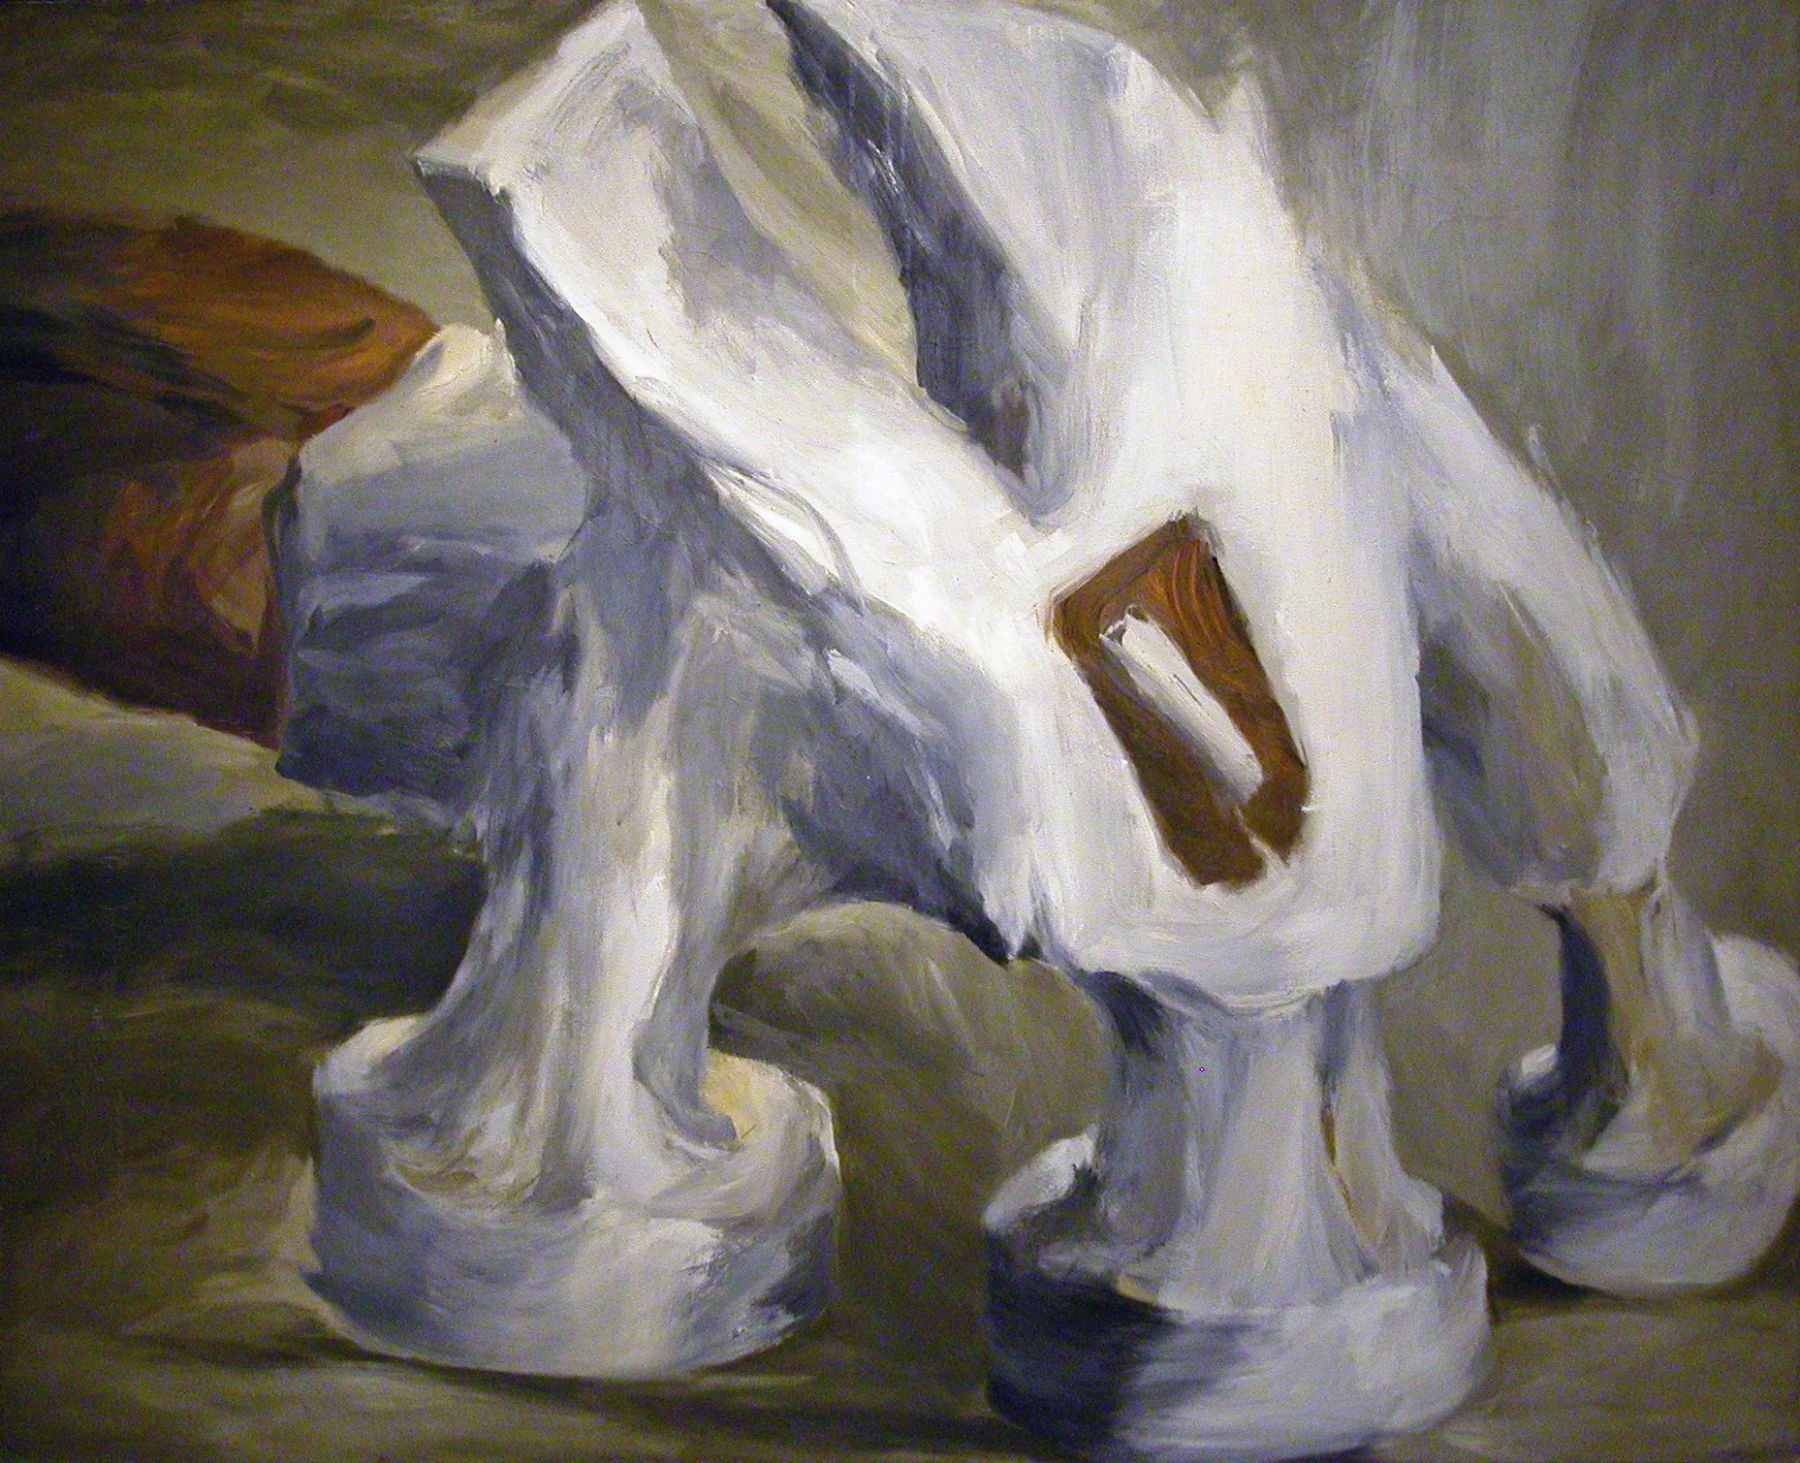 Lee Lozano, Untitled (Triple Hammer), 1963, oil on canvas, 79 ½ x 64 ½ inches